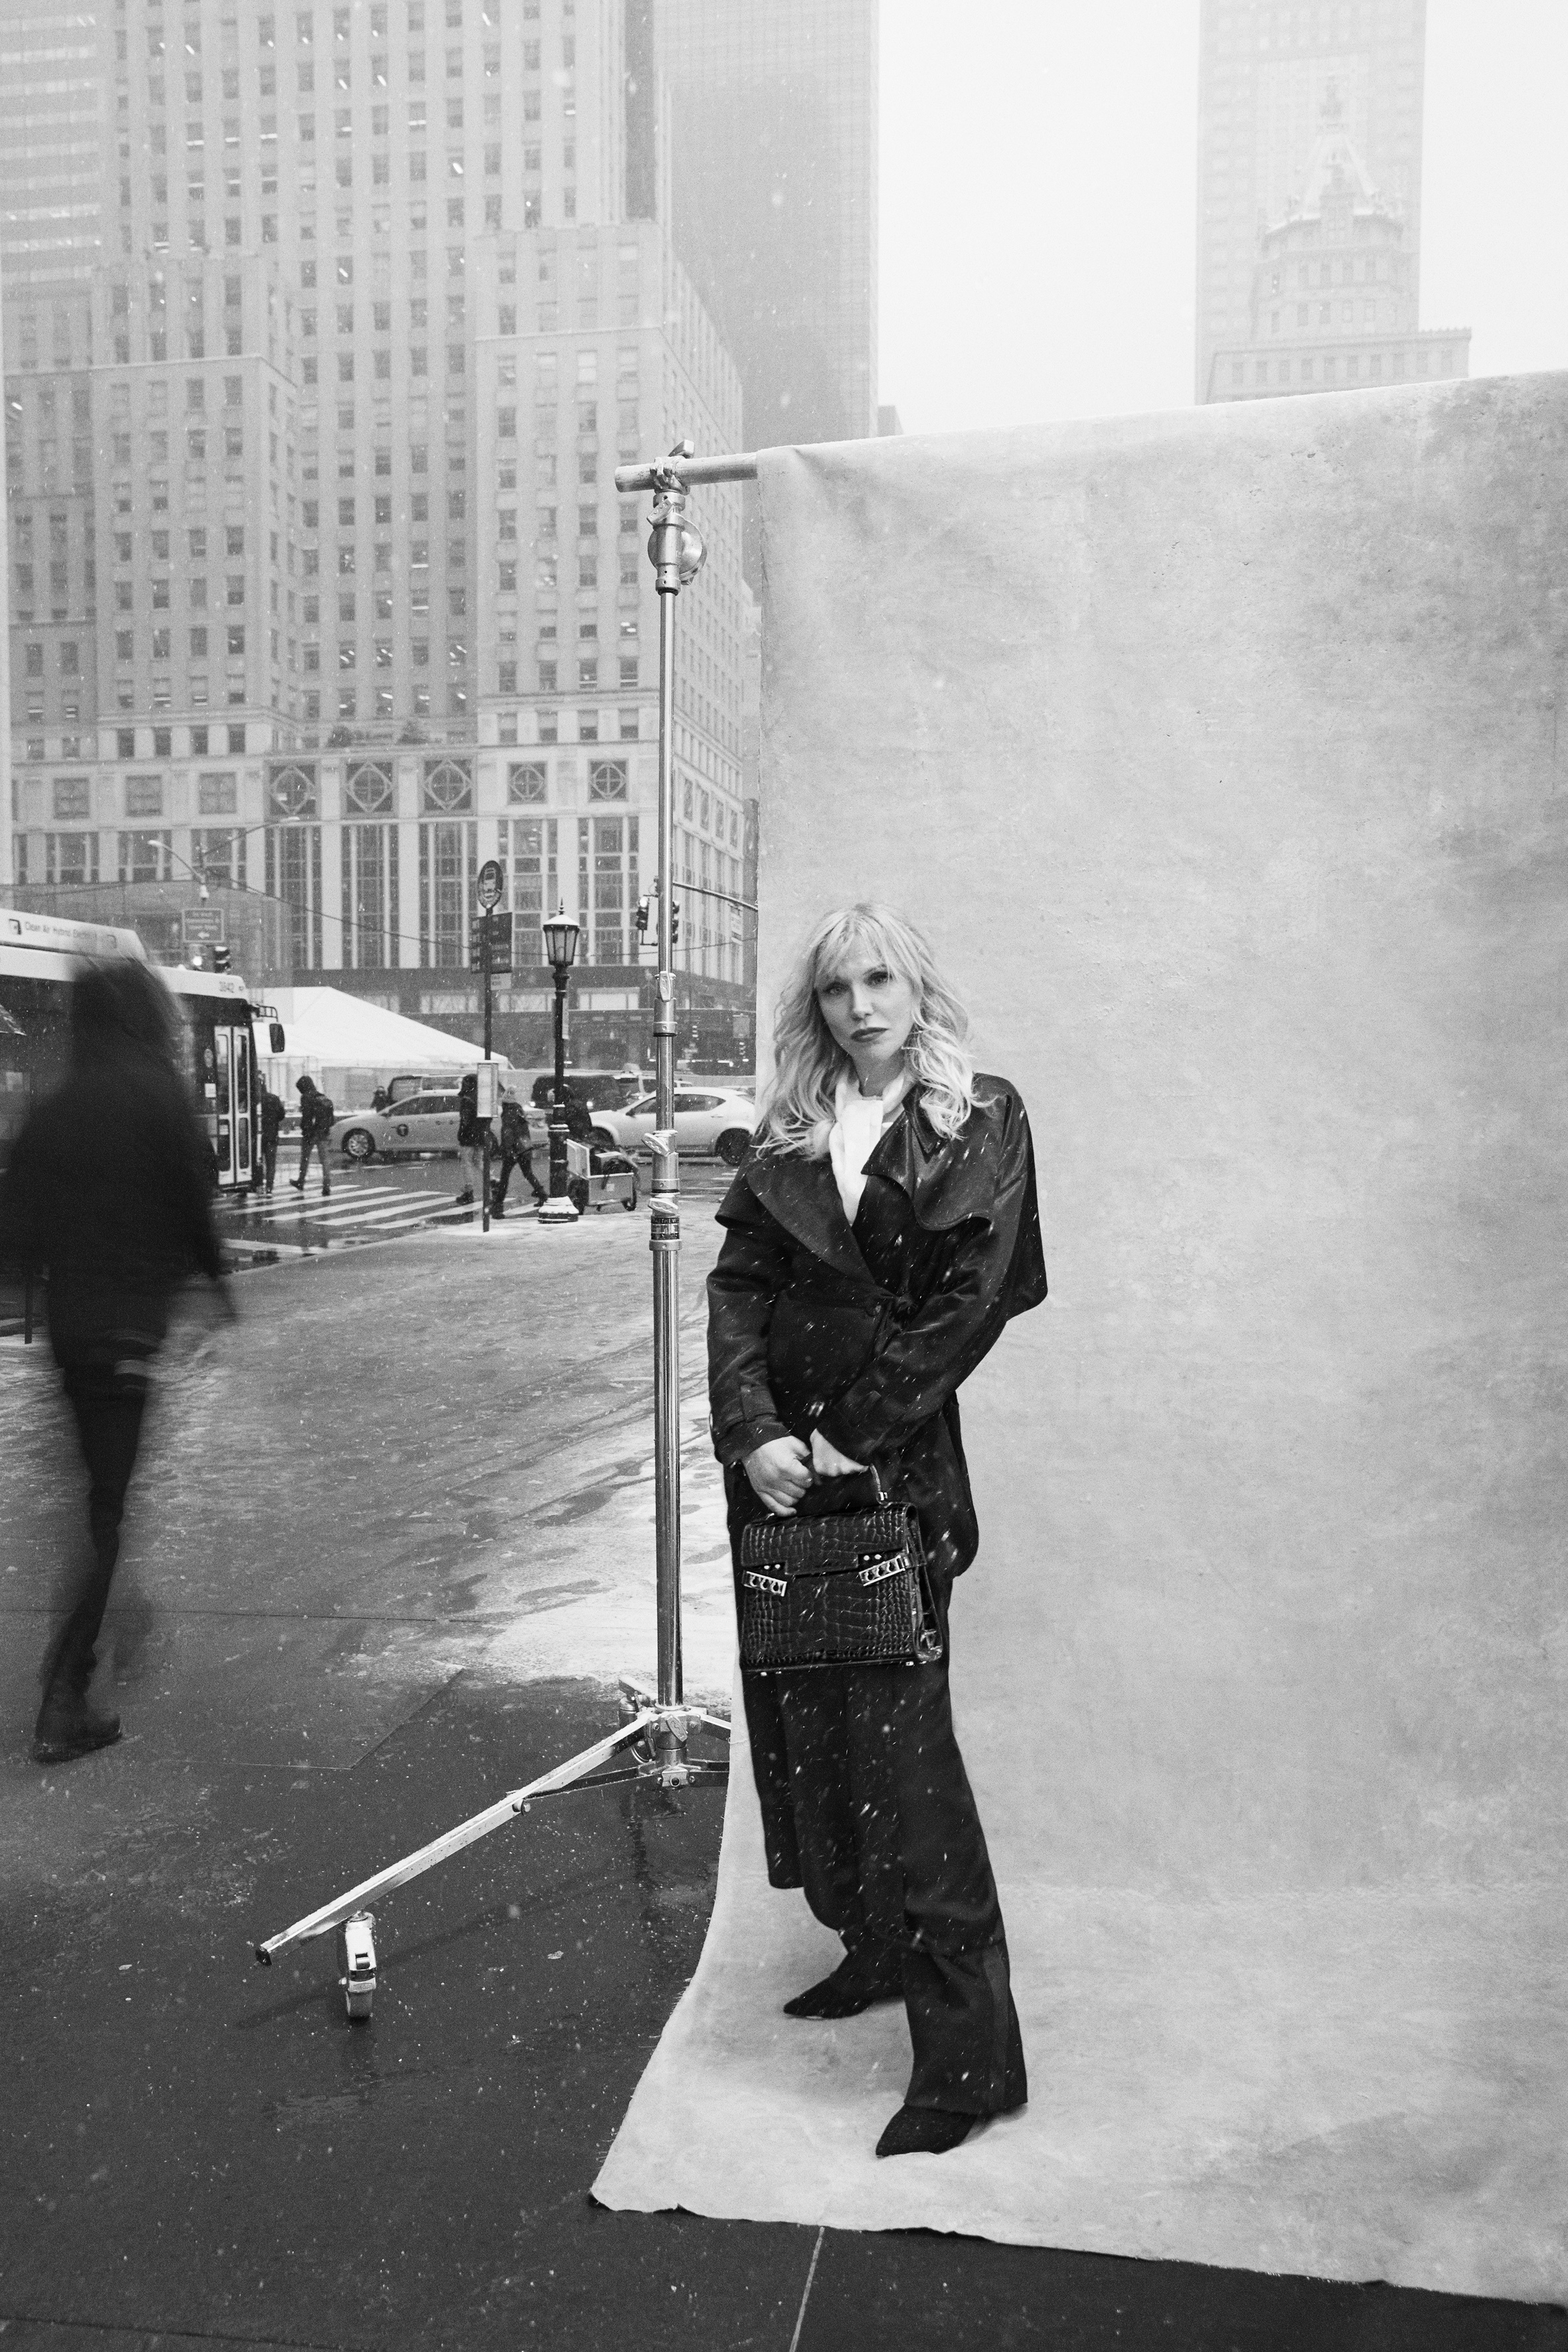 DELVAUX_New_York_Stories_Courtney_Love_by_Francesco_Carrozzini.jpg